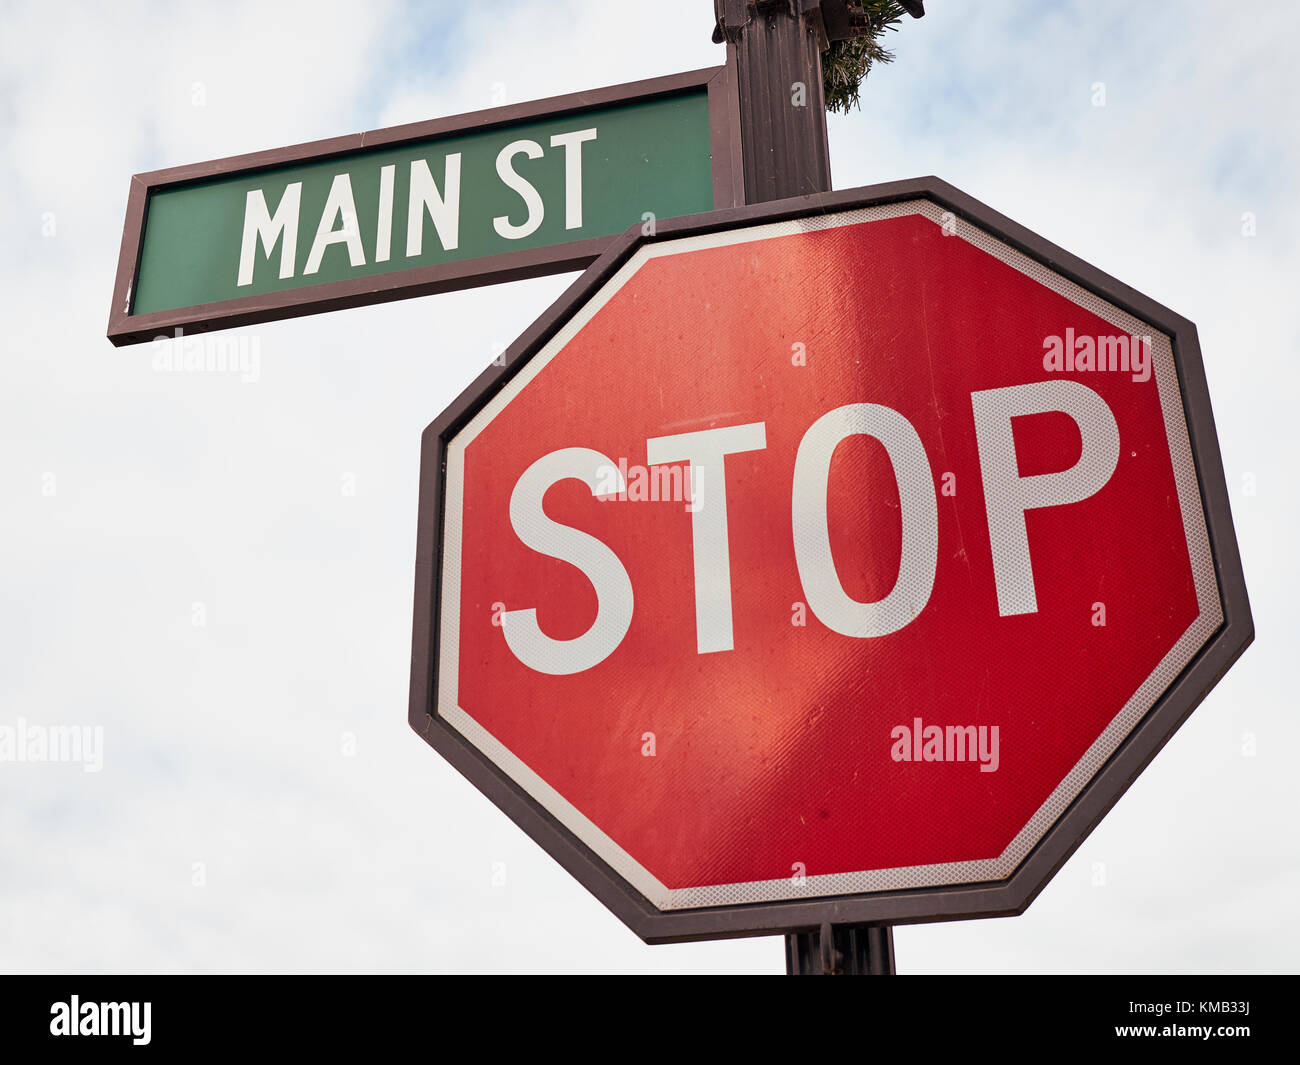 Main Street USA, street sign at a stop intersection, in a small town in rural Alabama, USA. - Stock Image